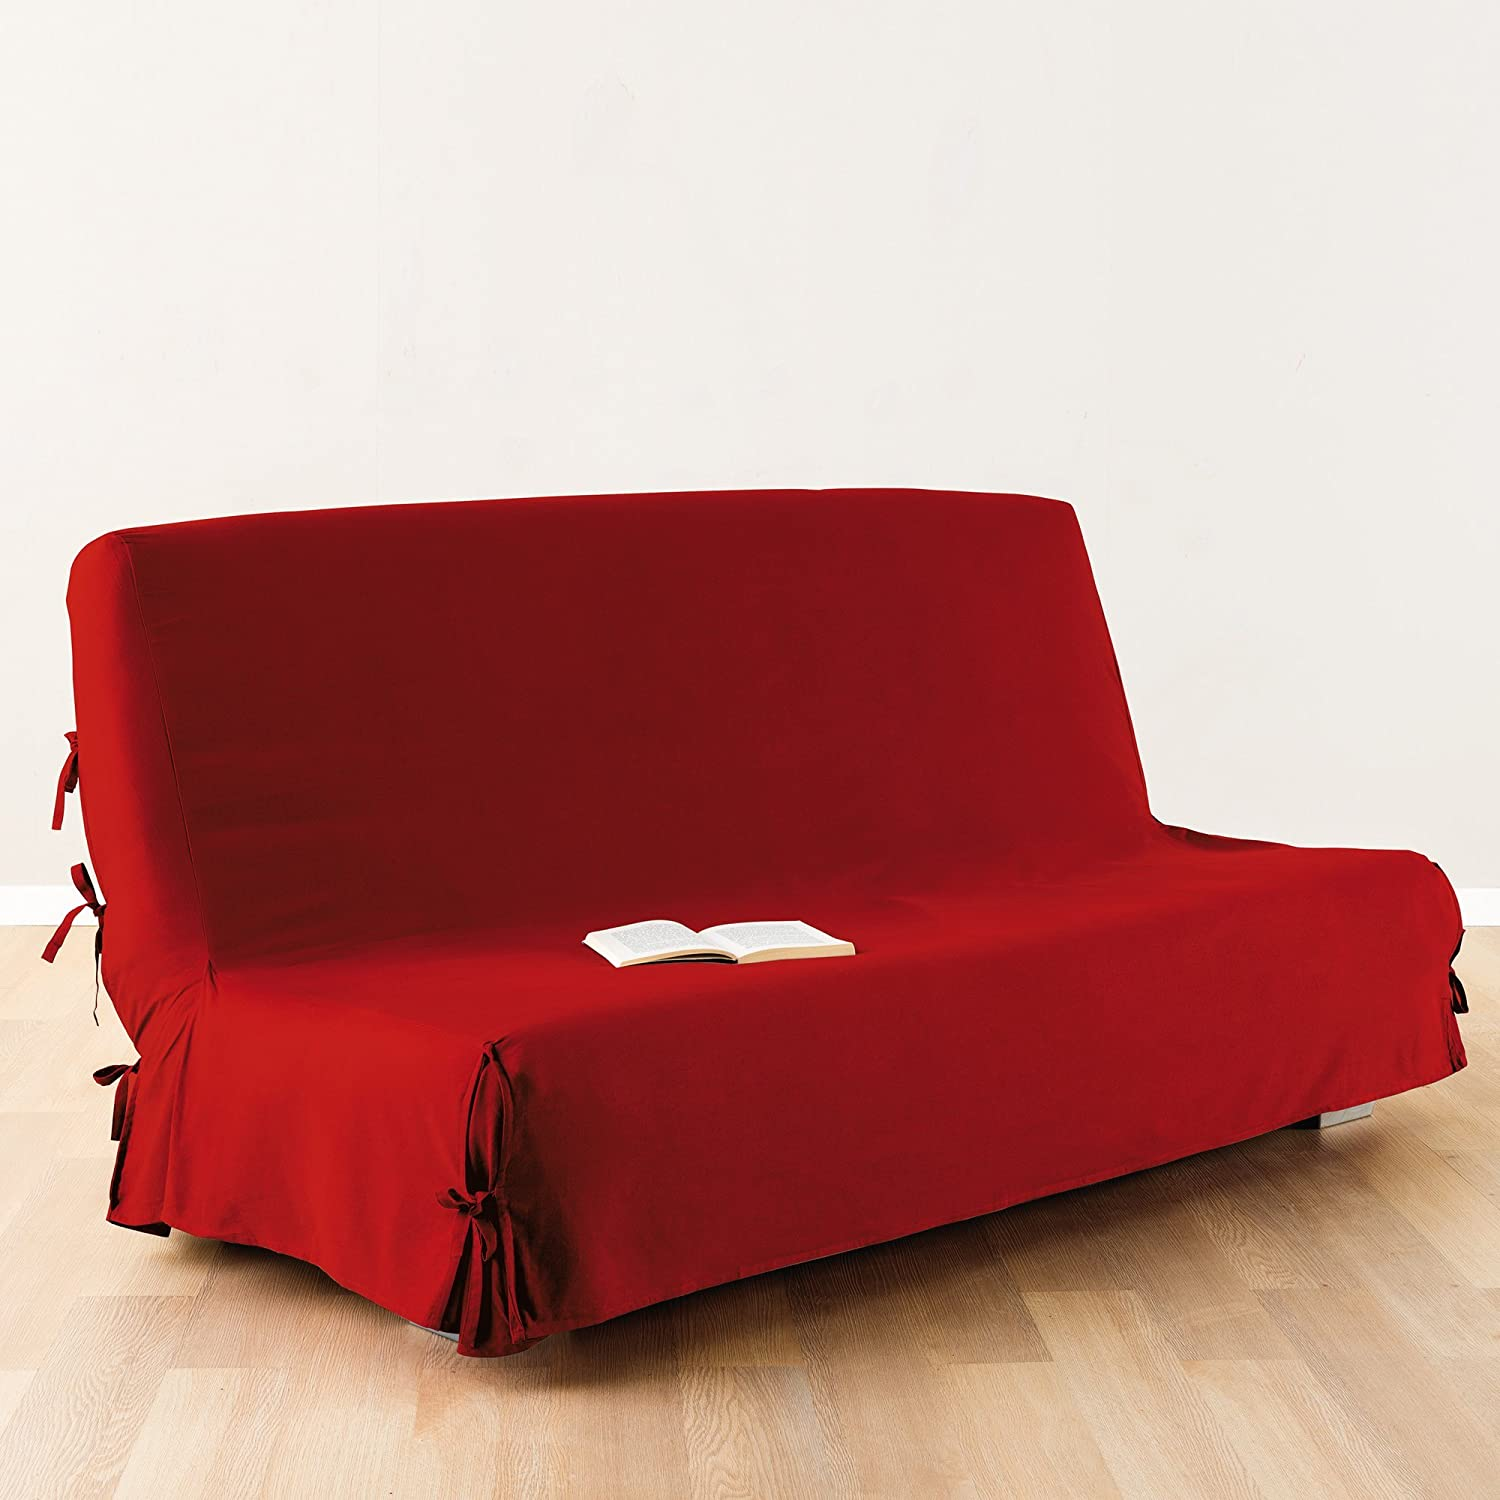 Sofa bed Futon cover 100 % cotton colour RED Amazon